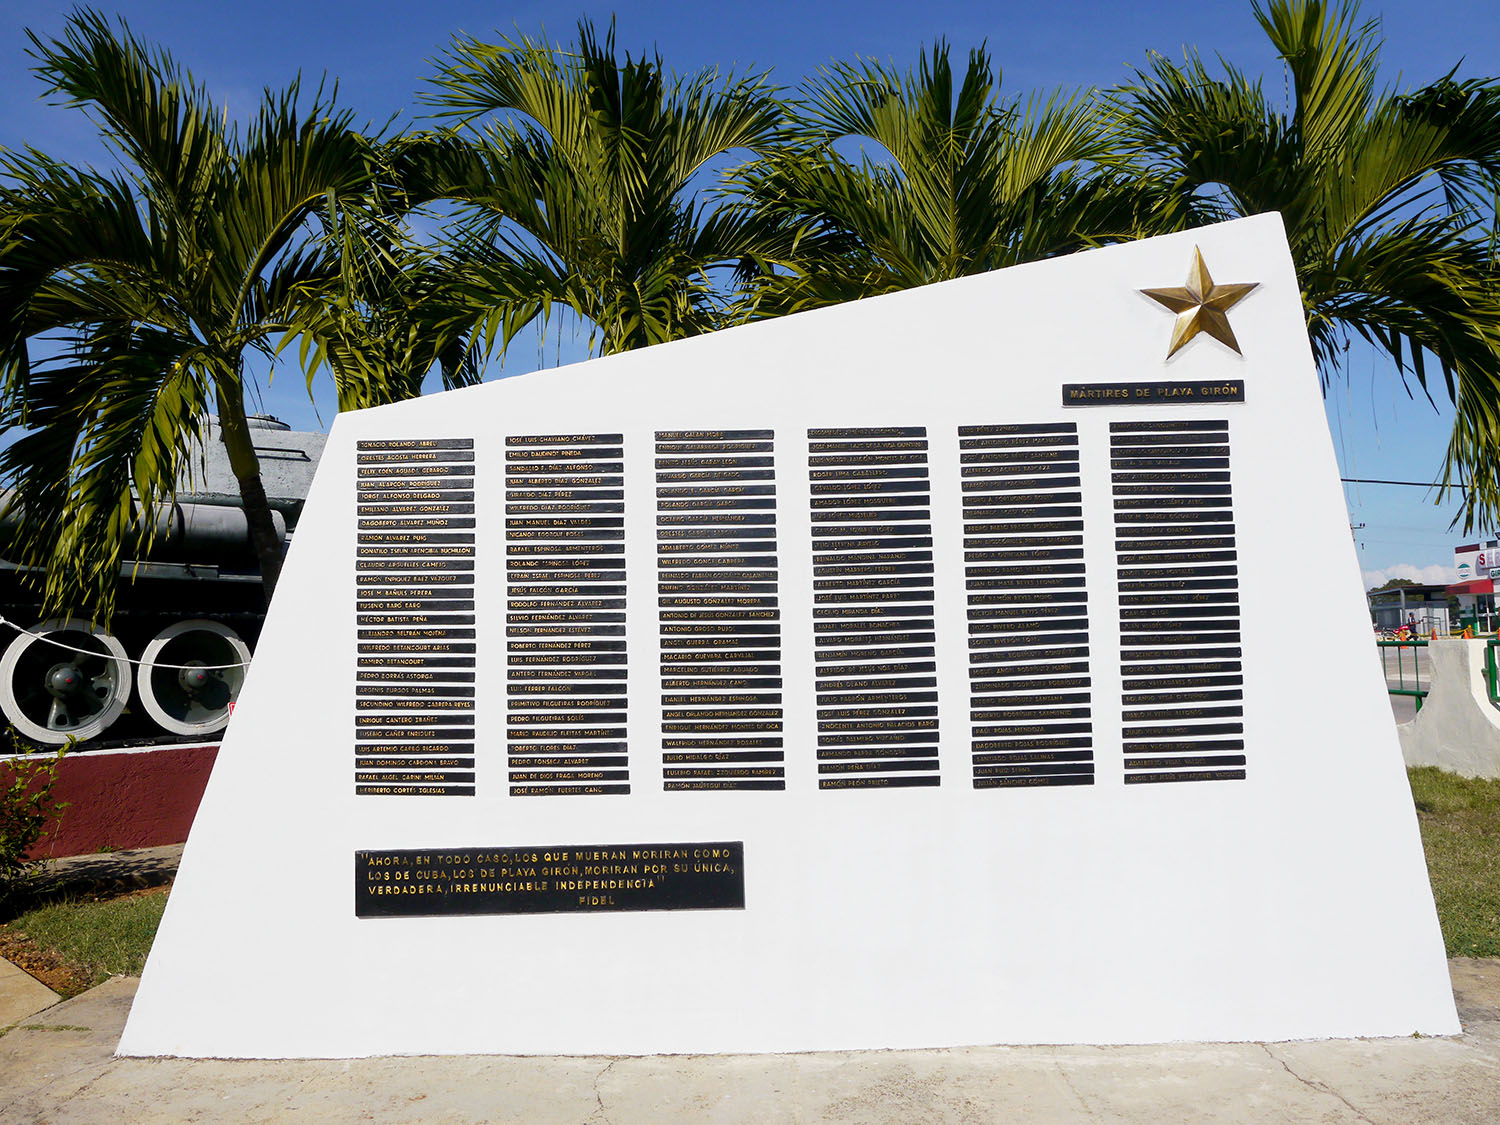 A memorial with a list of those who died.